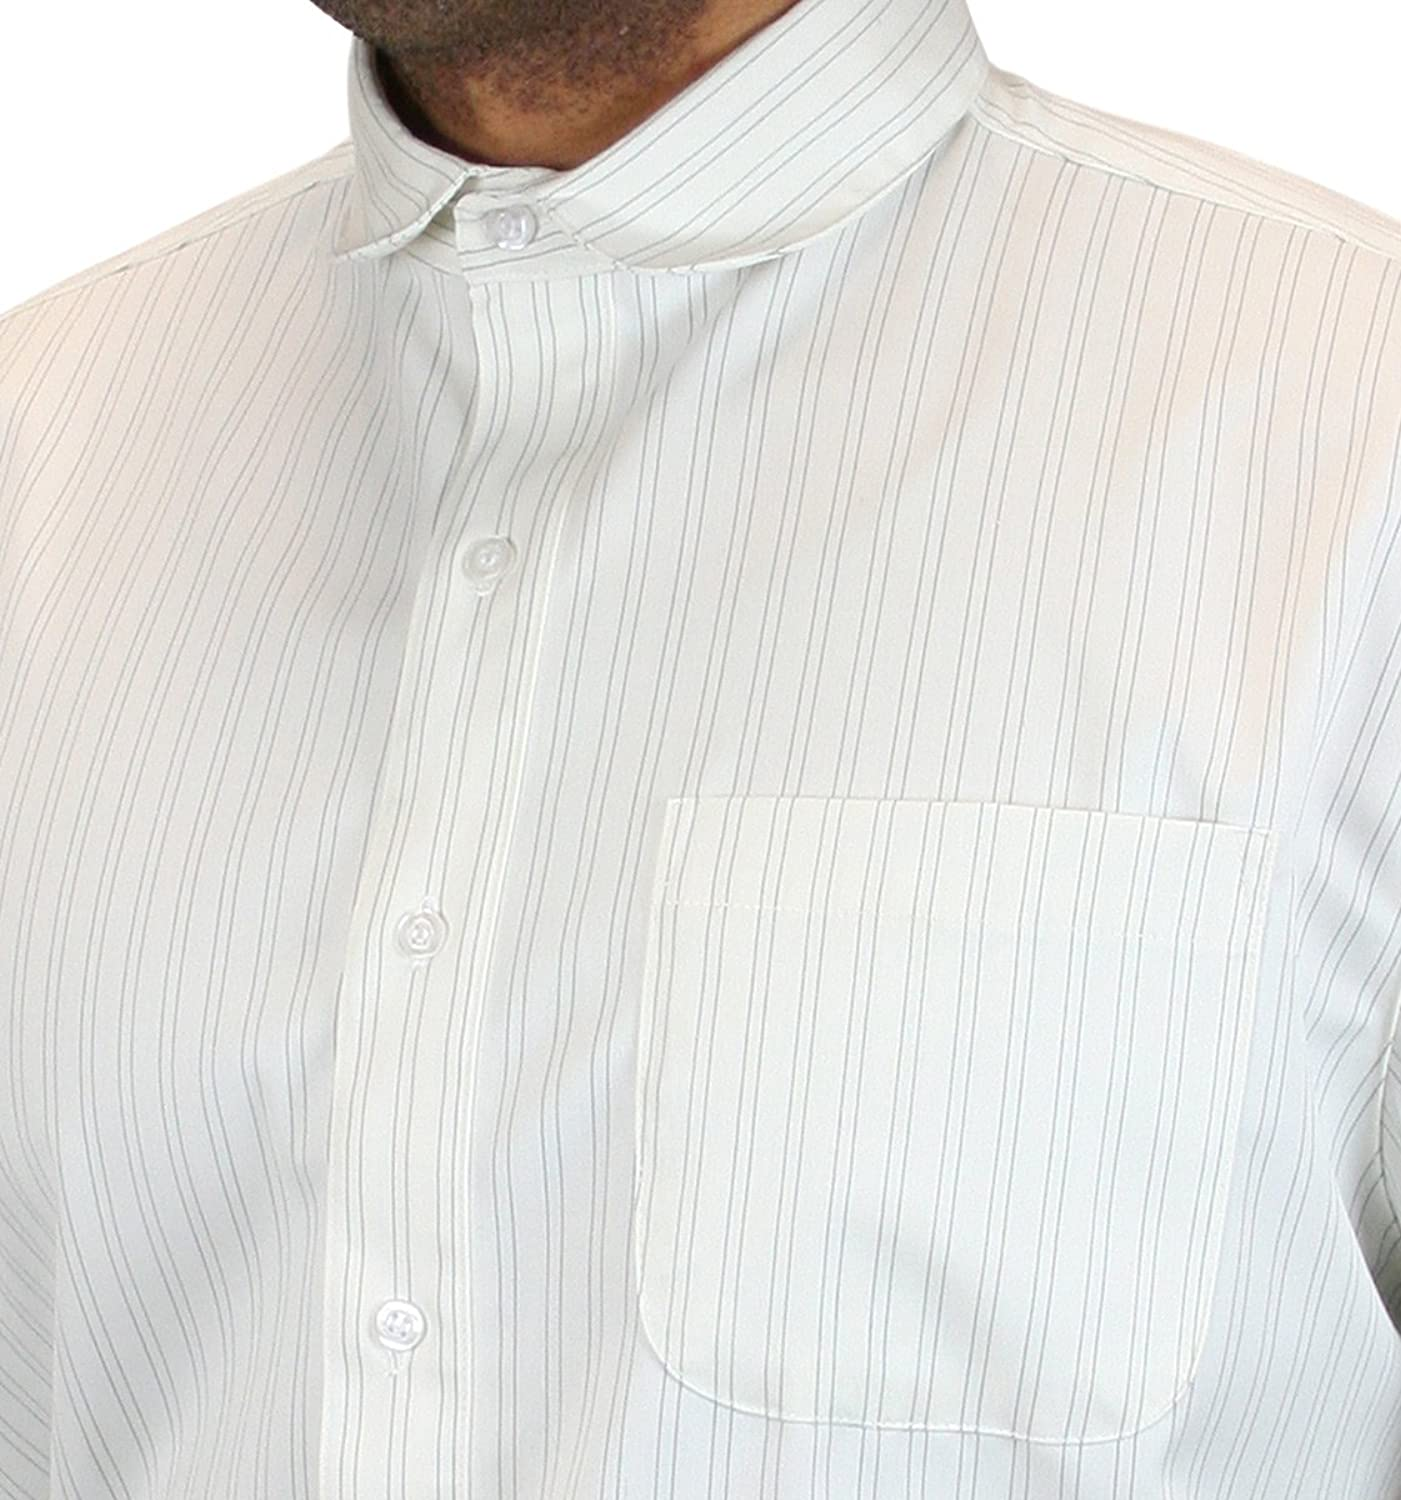 Edwardian Men's Shirts & Sweaters Virgil Club Collar Dress Shirt $59.95 AT vintagedancer.com